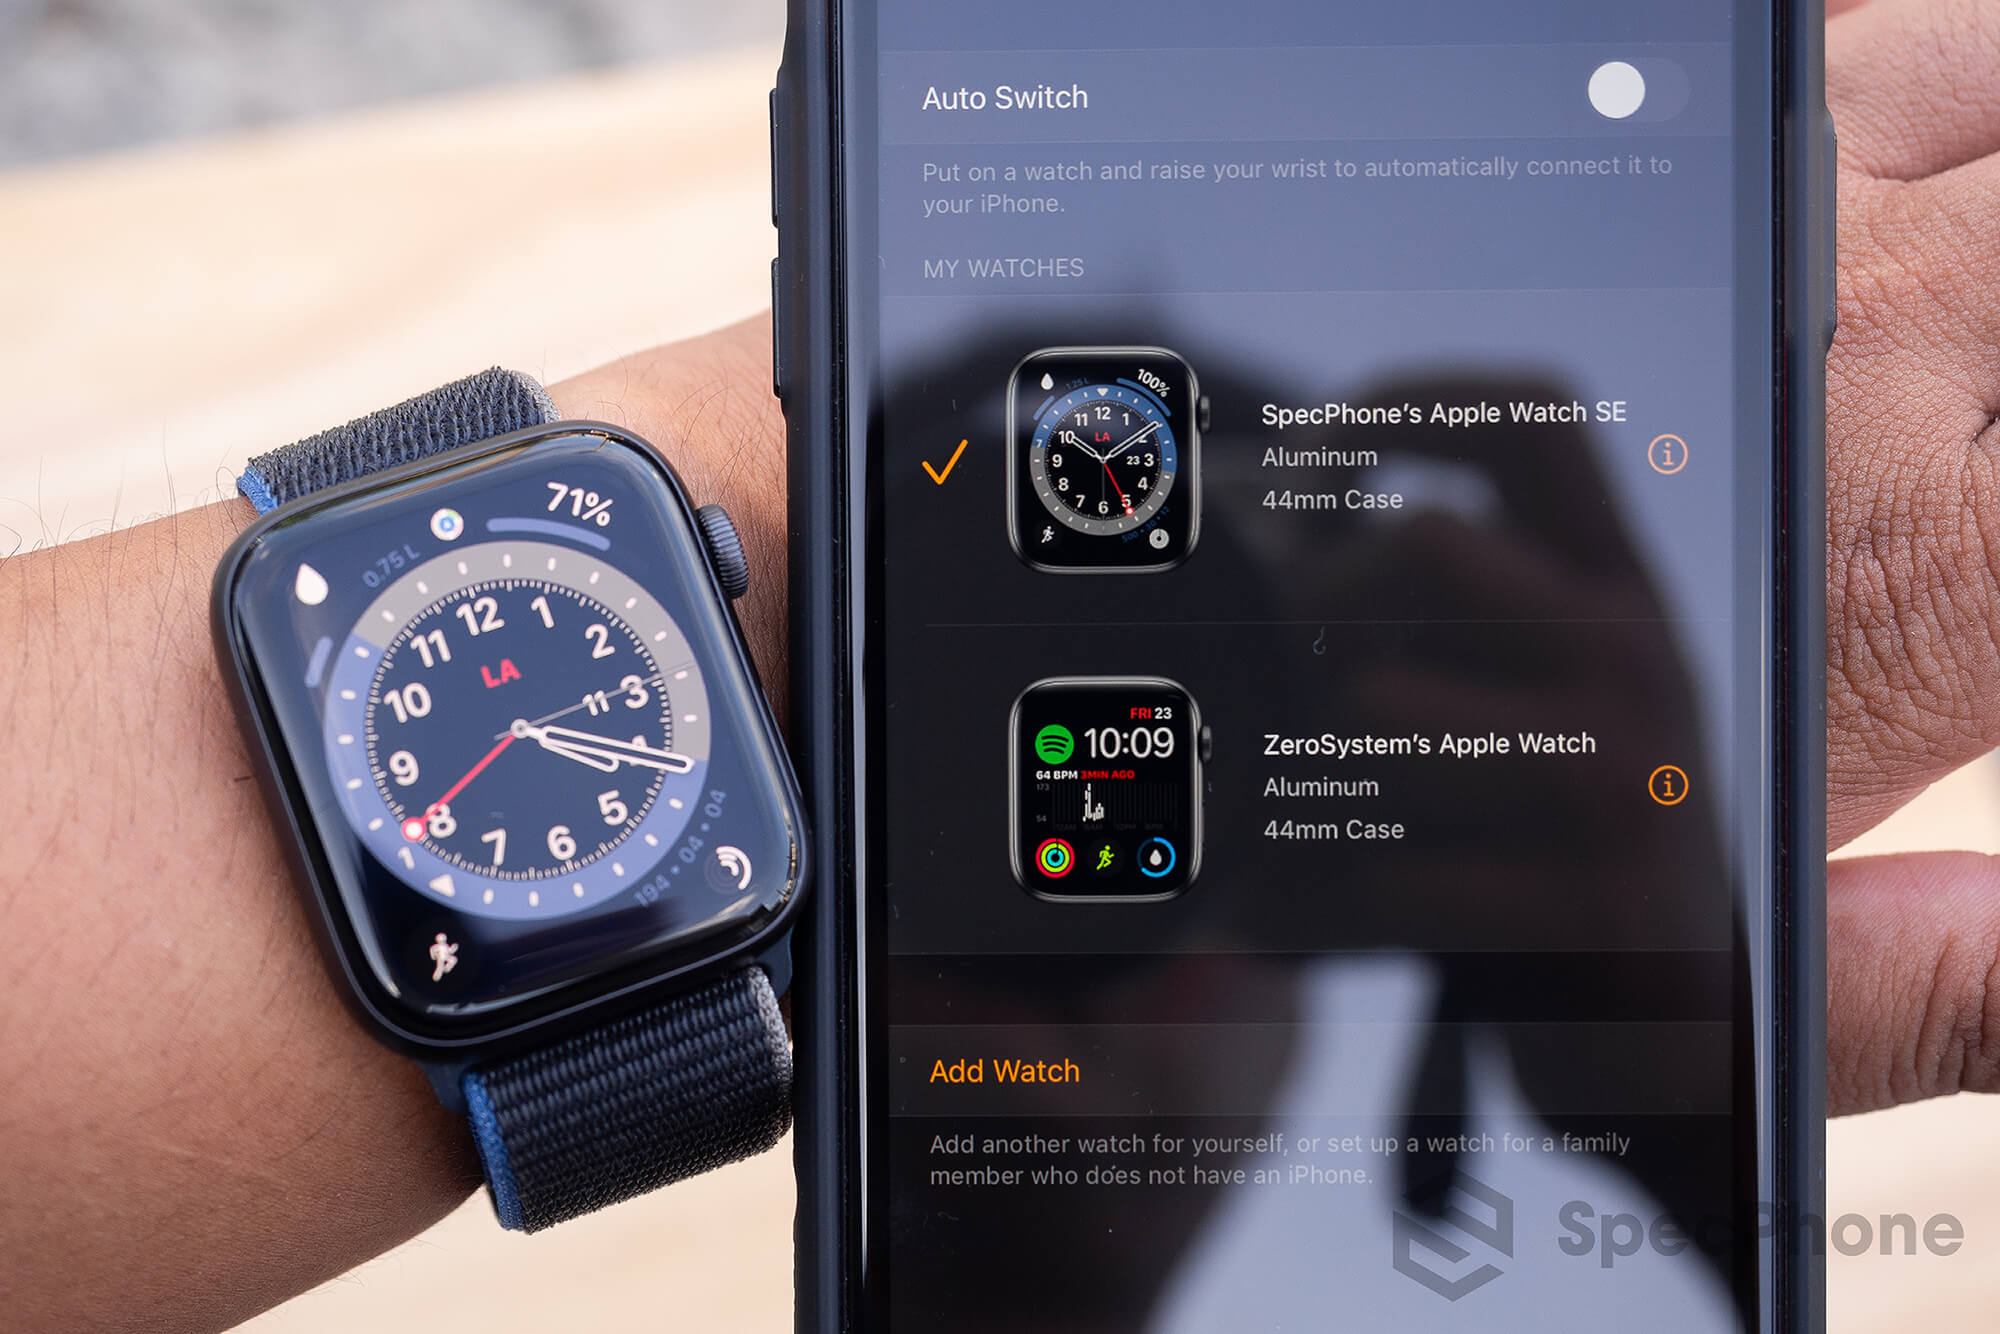 Review Apple Watch SE SpecPhone 31